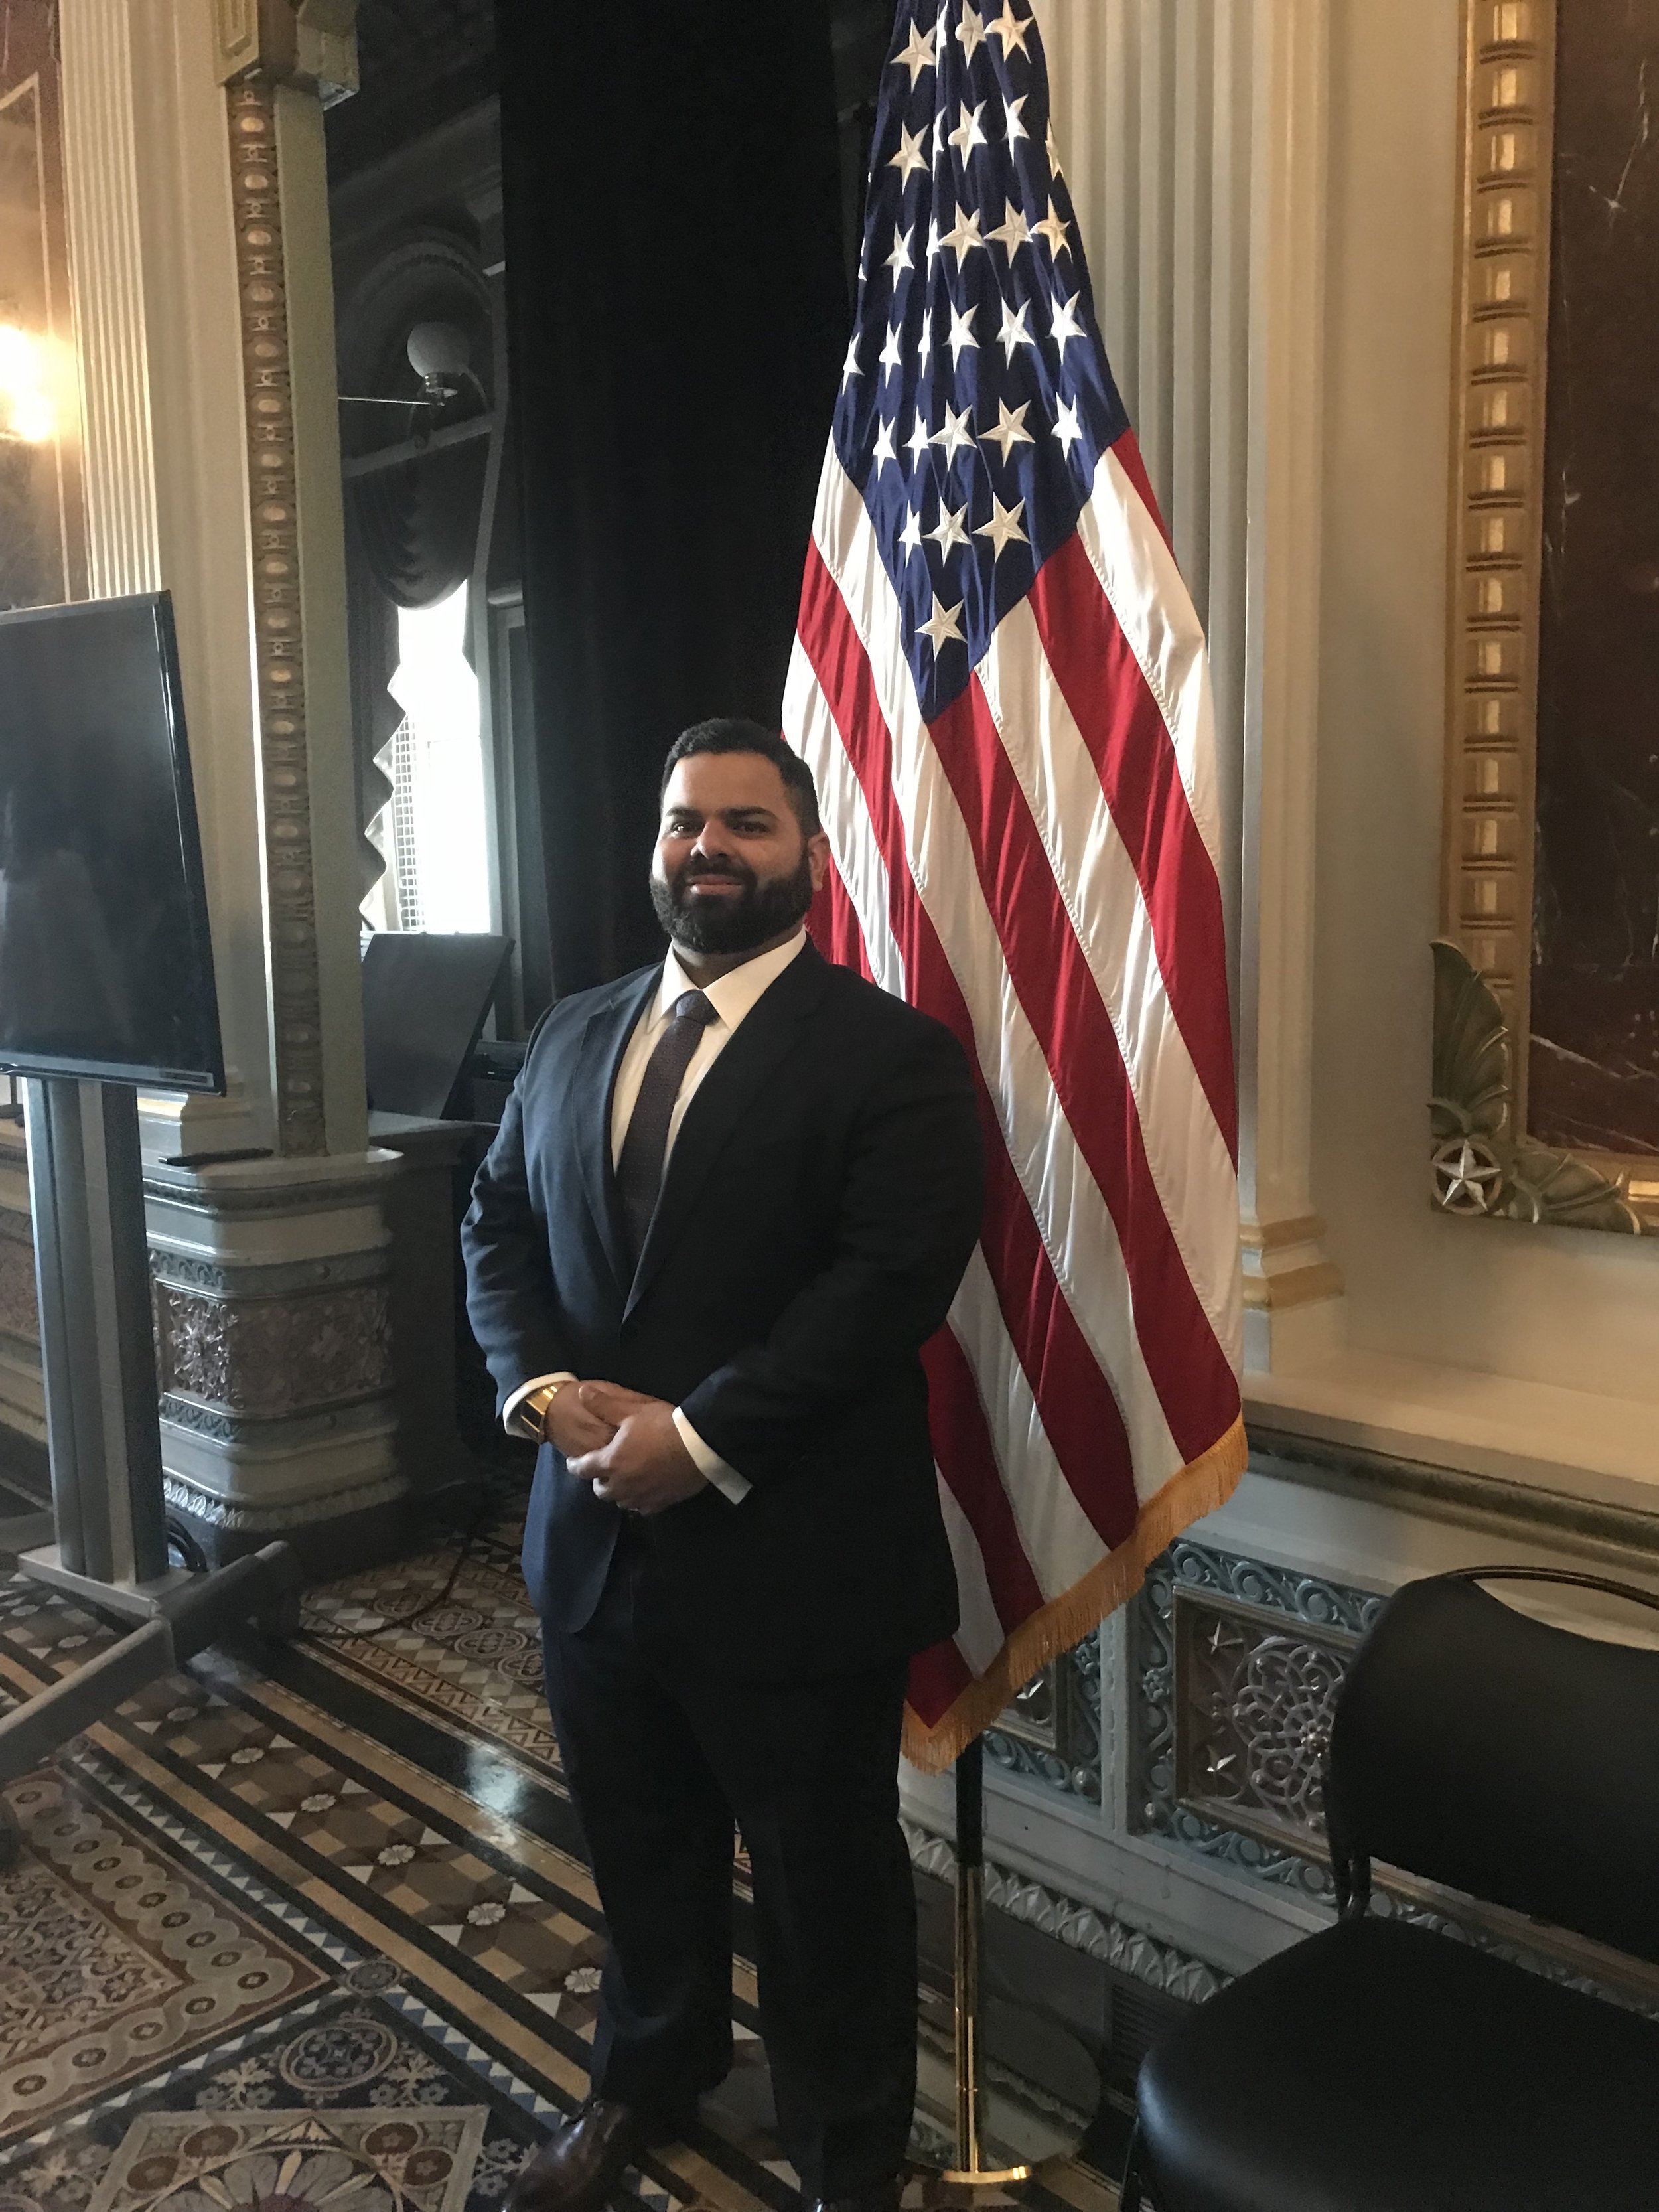 Dr. Nelson Colón Vargas during the initiation ceremony as Presidential Innovation Fellow at The White House Campus.